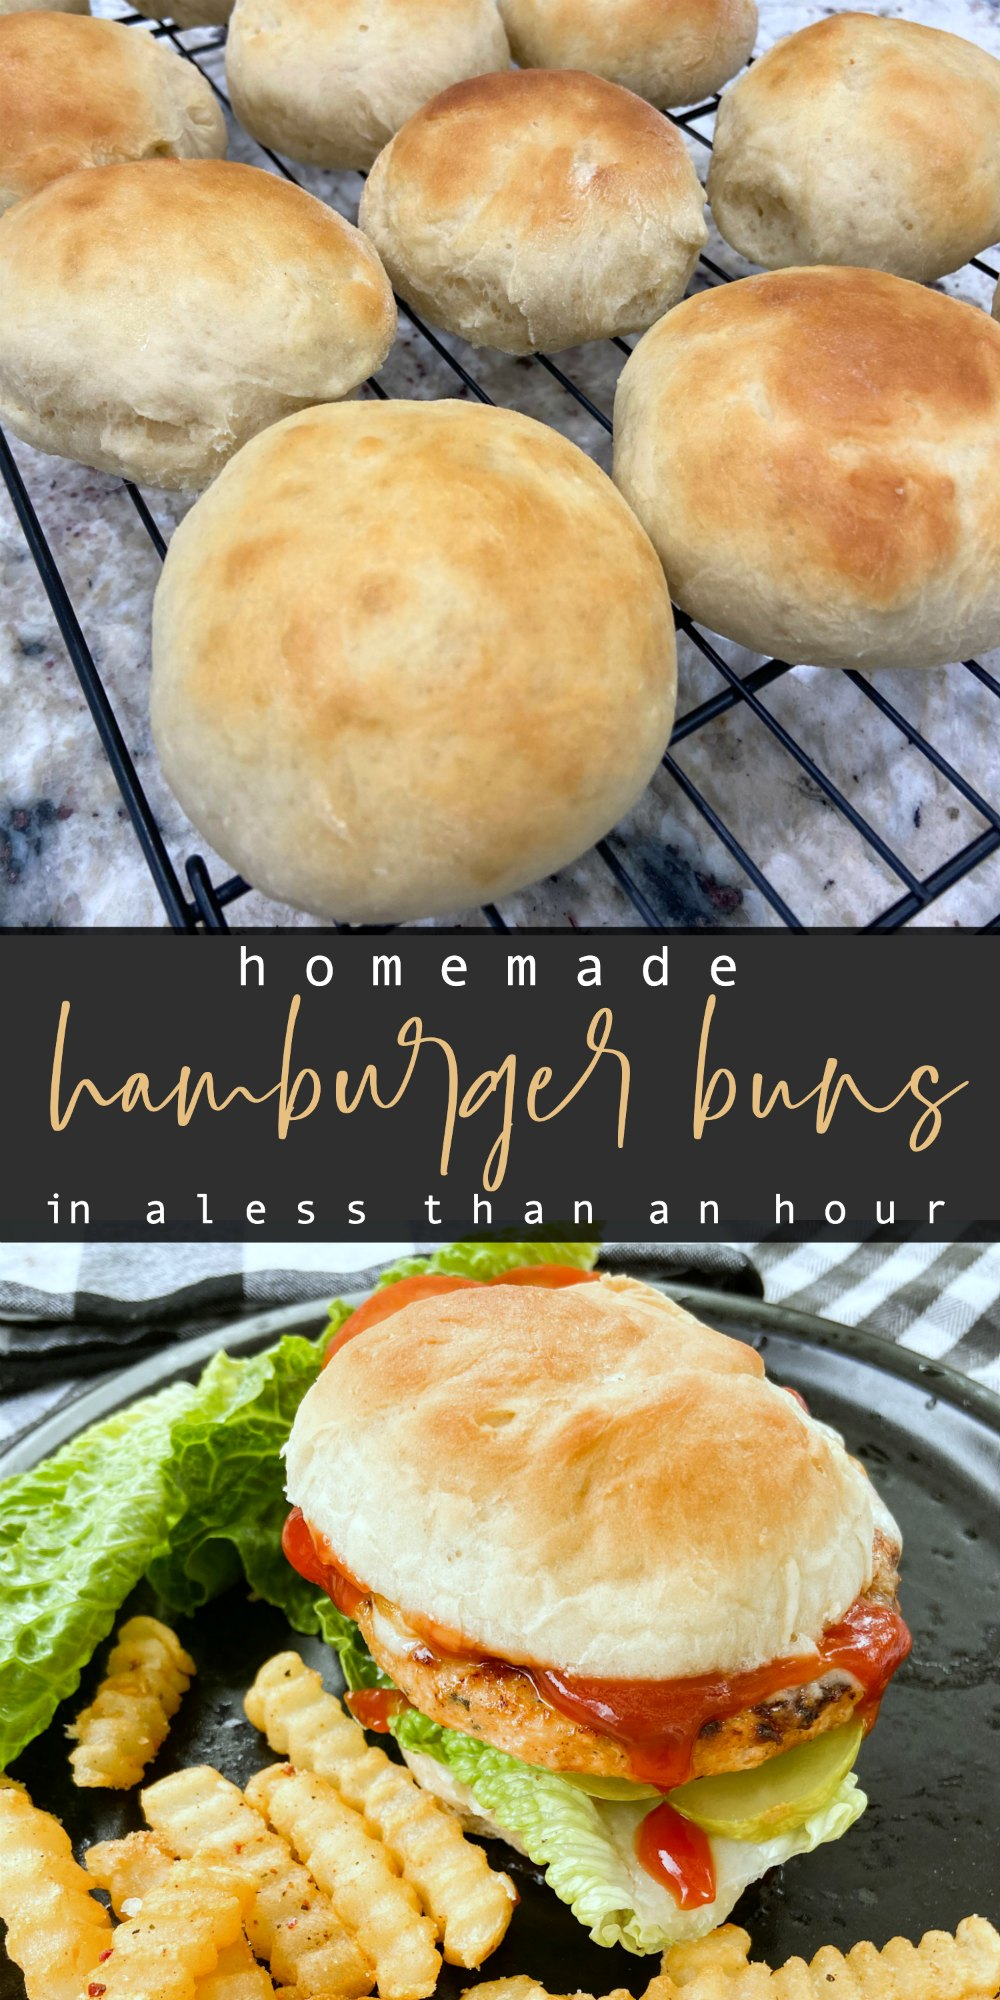 Homemade Hamburger Buns in less than an hour